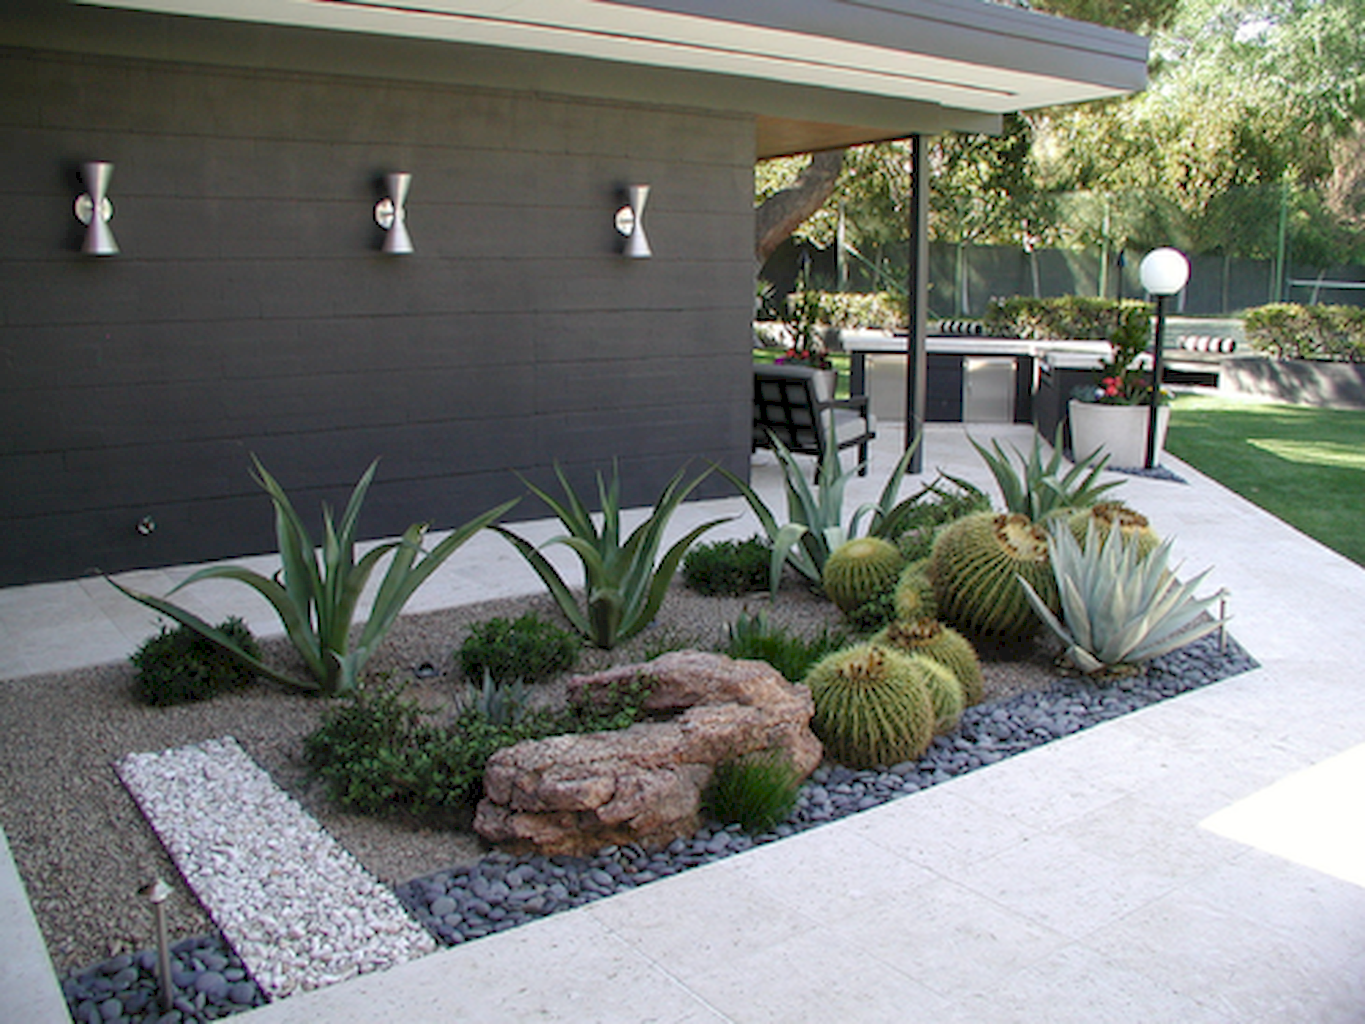 55 Low Maintenance Front Yard Landscaping Ideas Modern Garden Landscaping Garden Landscape Design Low Water Landscaping